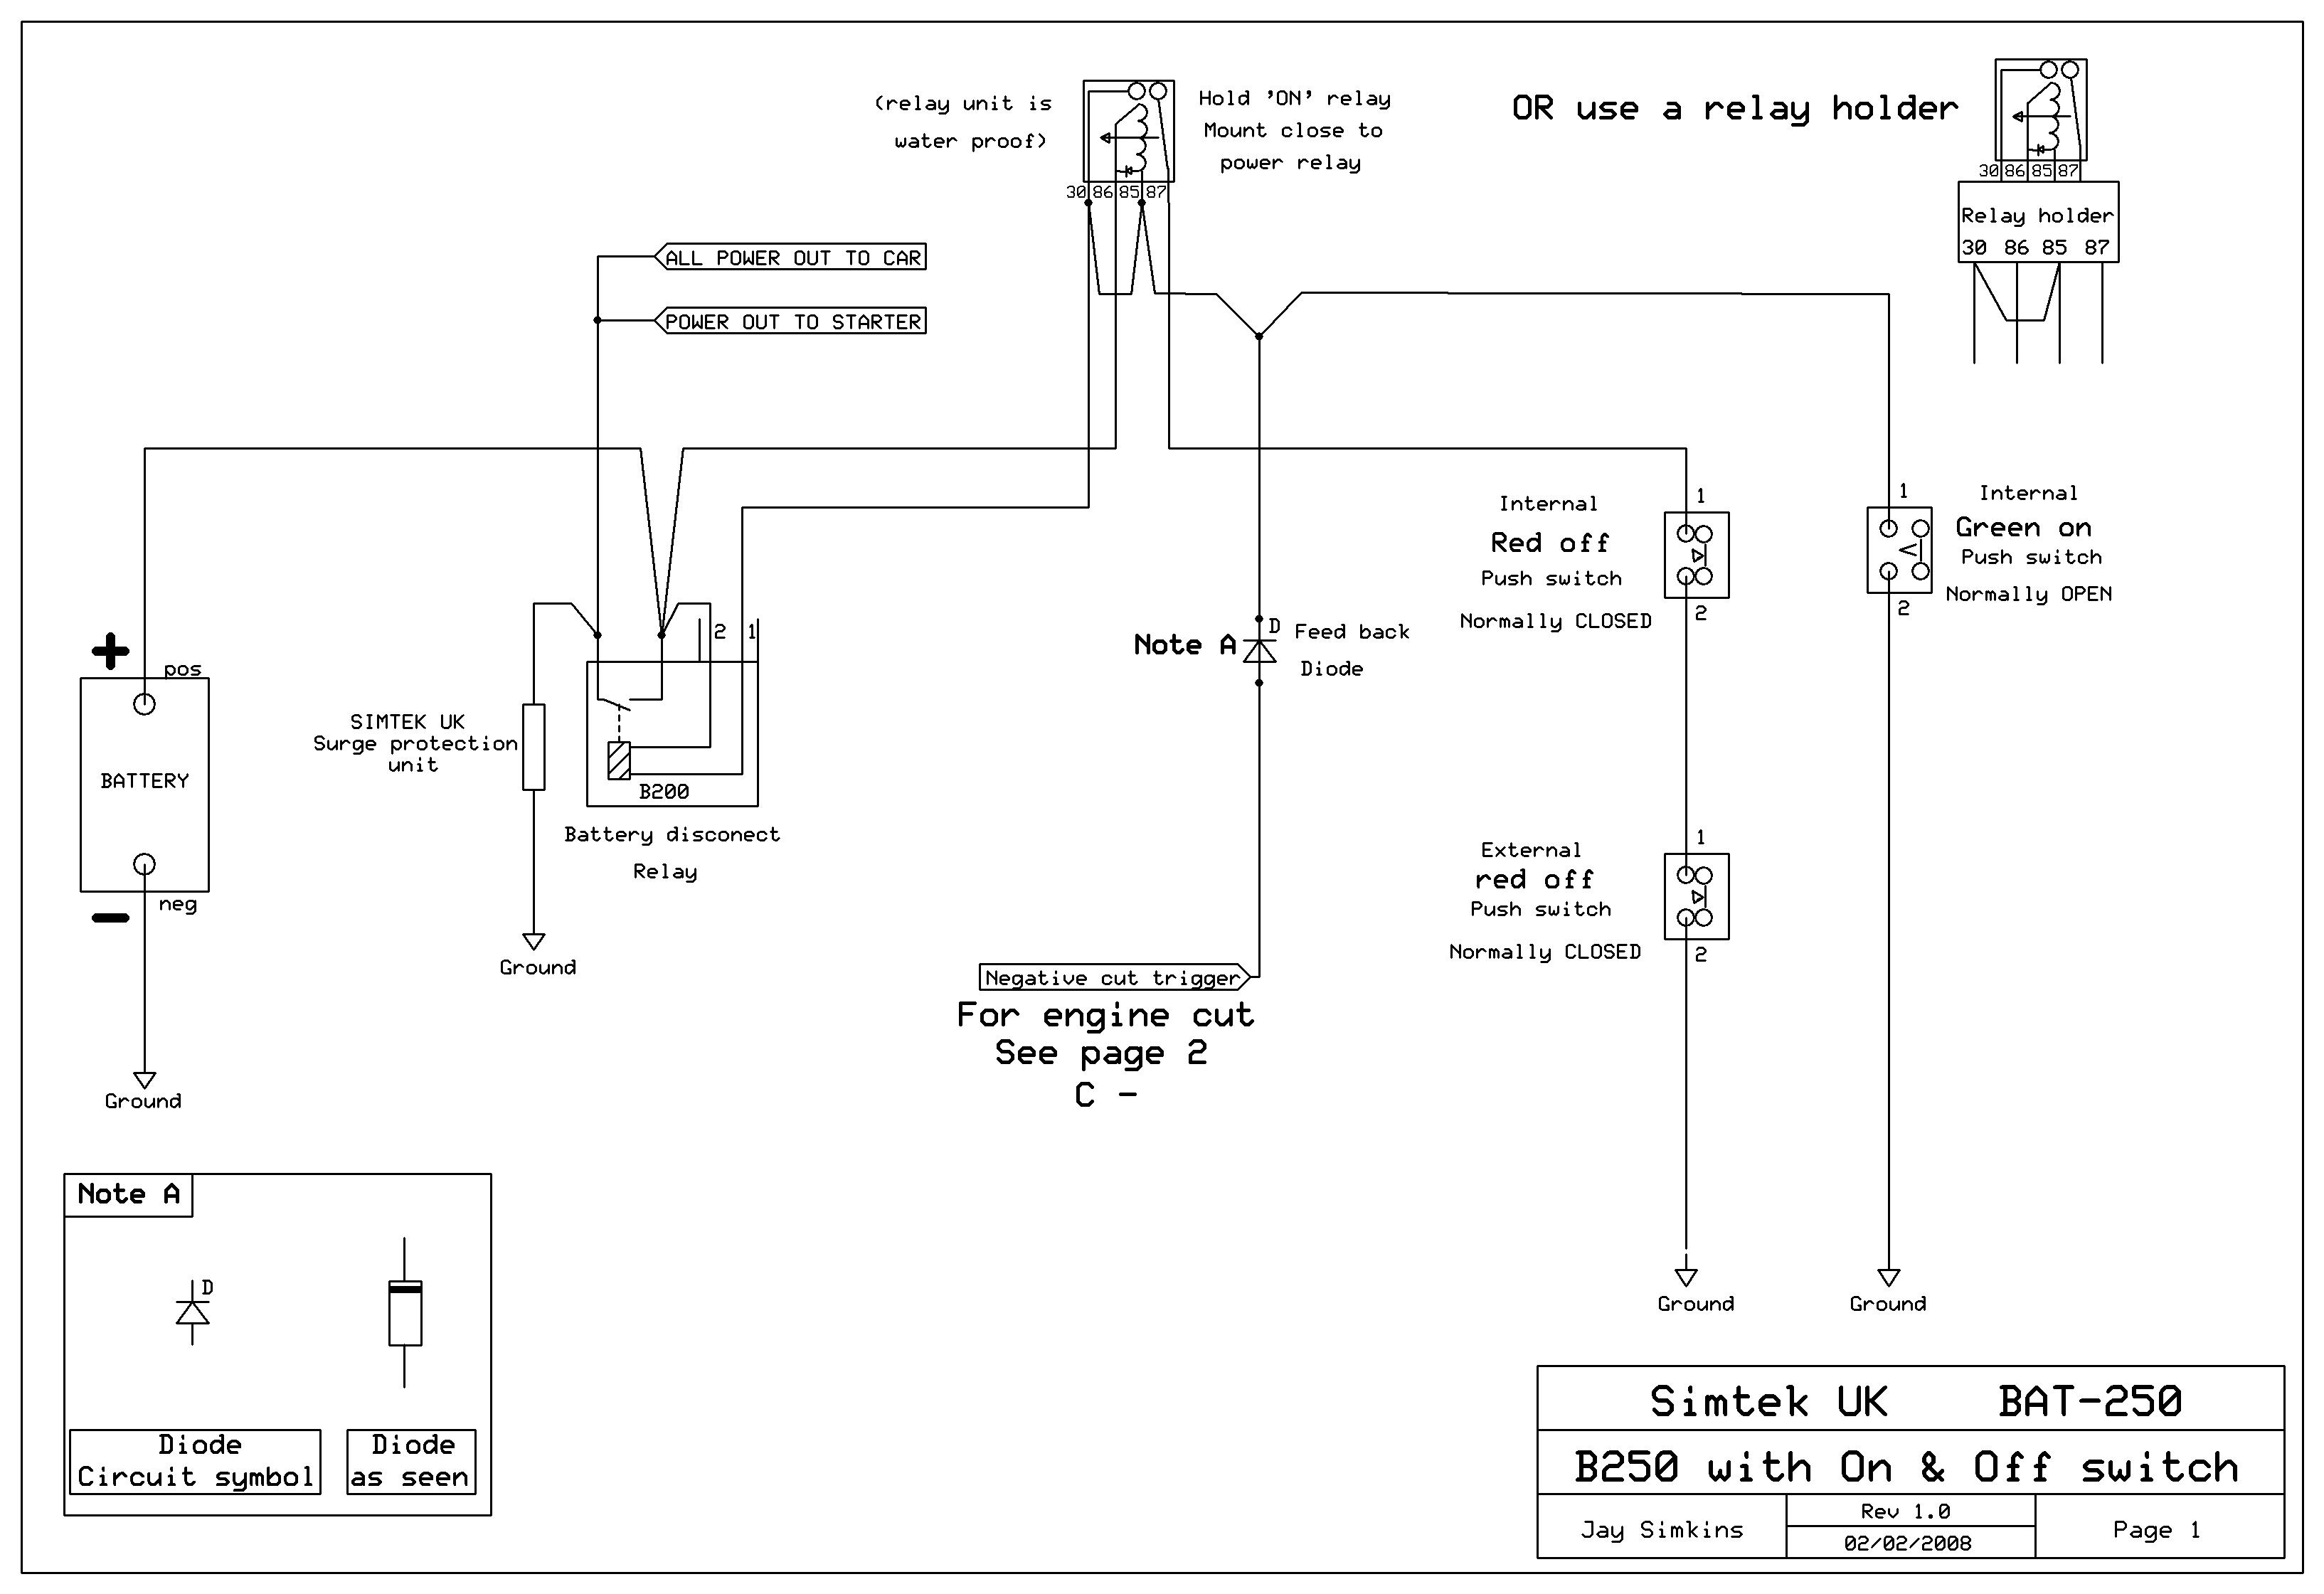 push pull switch wiring diagram 93 mustang alternator button easy install electric battery master